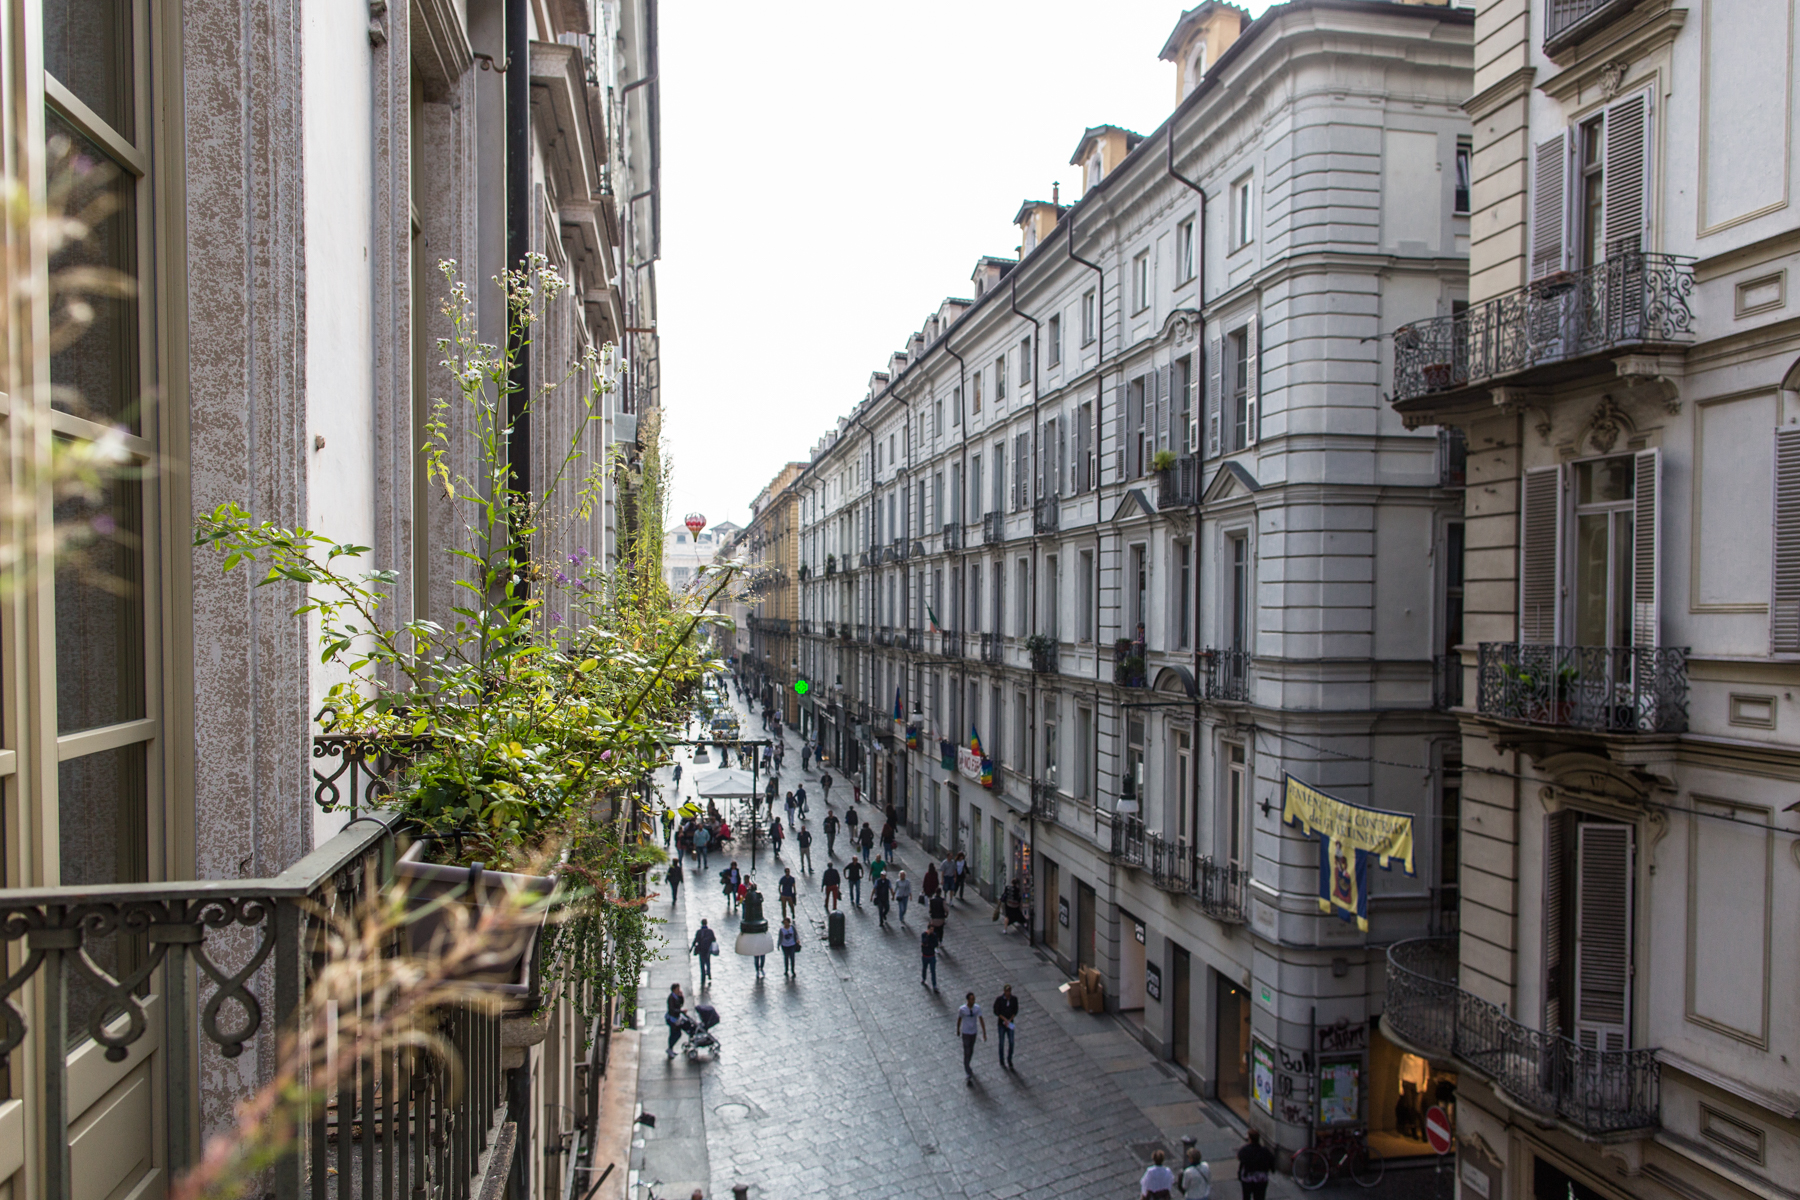 Additional photo for property listing at Elegant and fascinating apartment in the historical center of Turin Via Conte Verde 1 Turin, Turin 10122 Italien